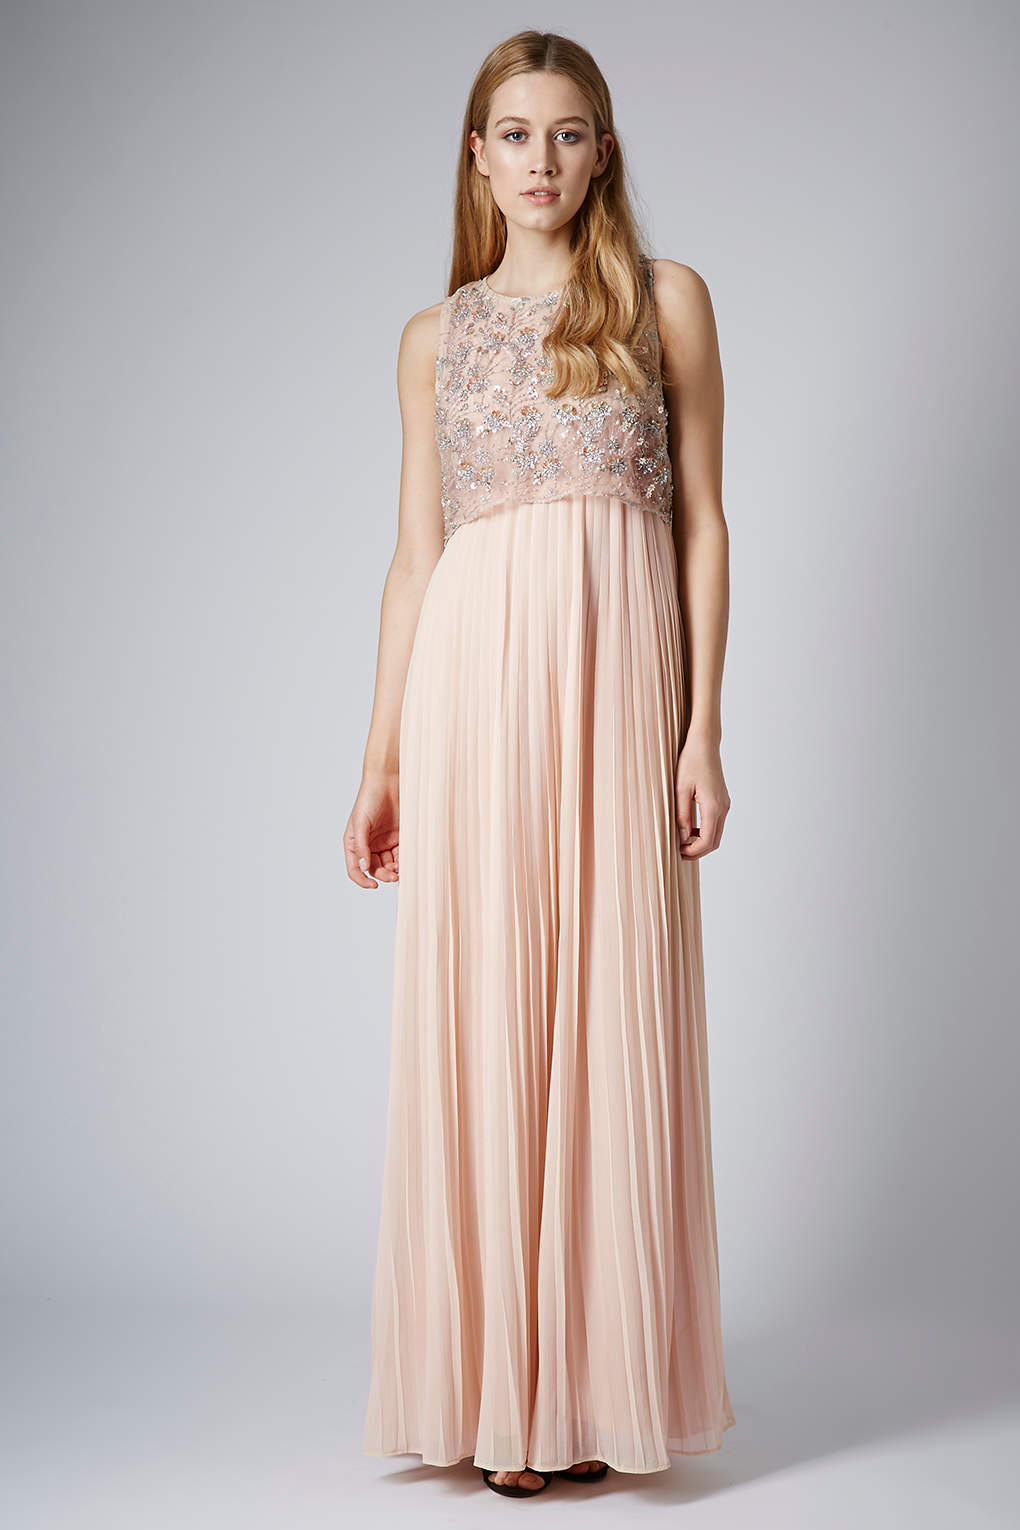 Topshop Limited Edition Pleated Embellished Maxi Dress in Pink  Lyst